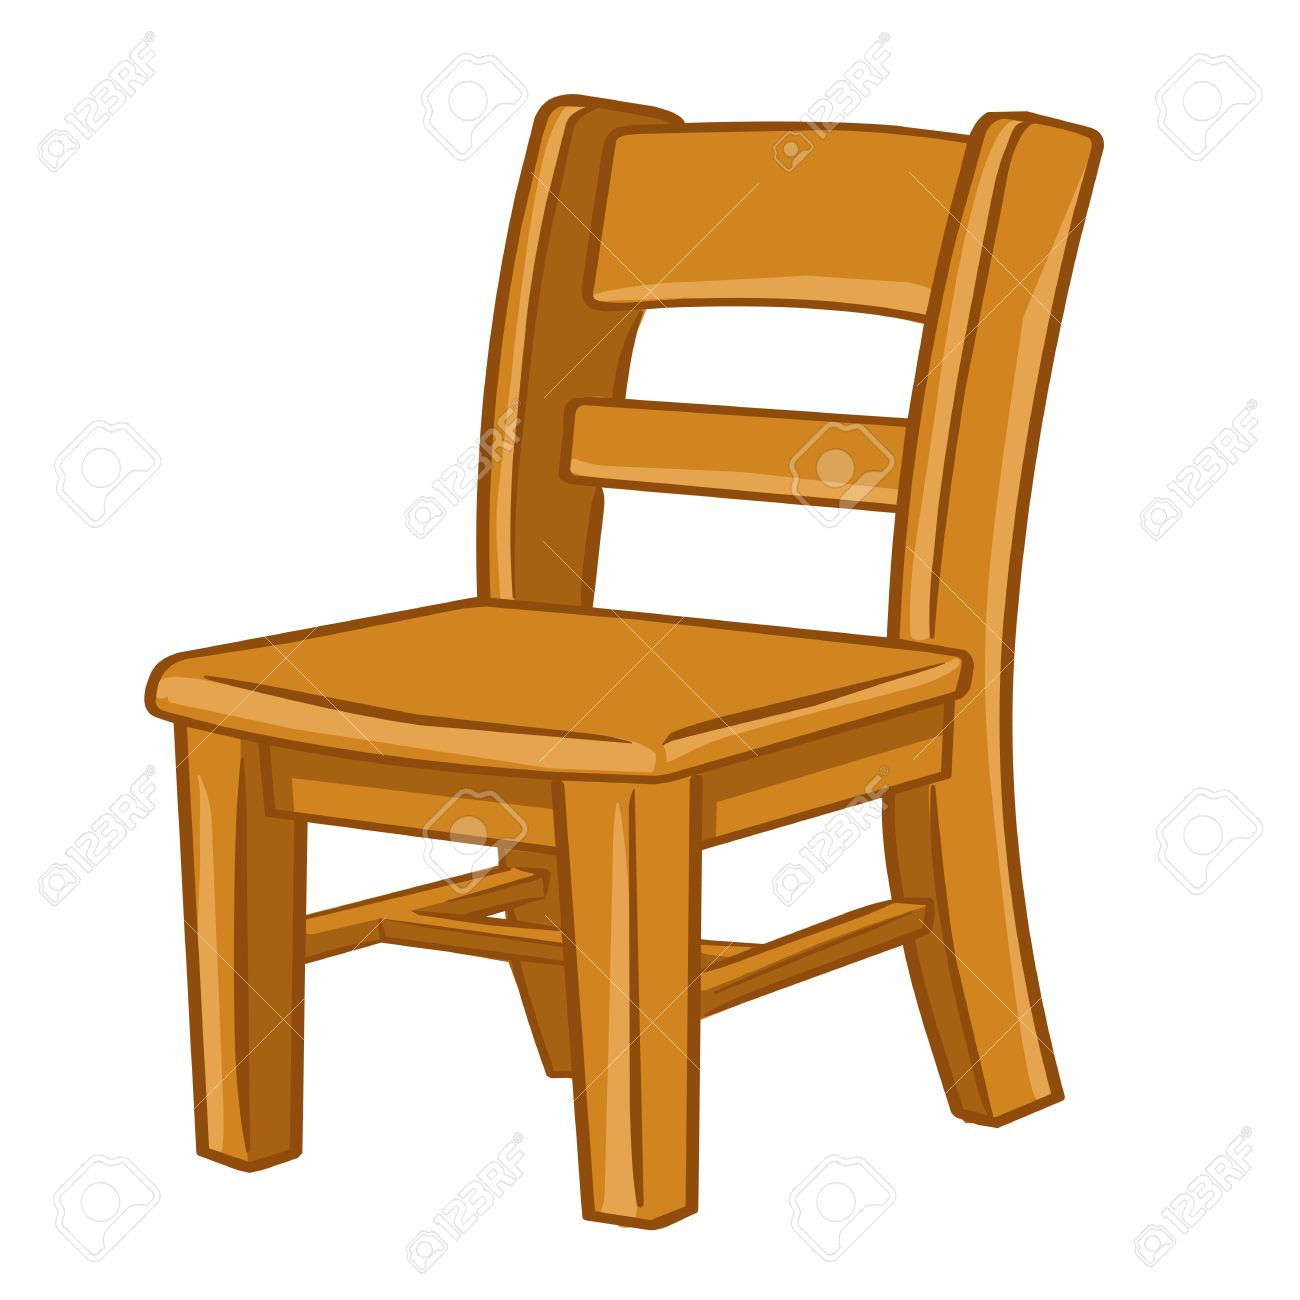 Wooden chair clipart 8 » Clipart Station.